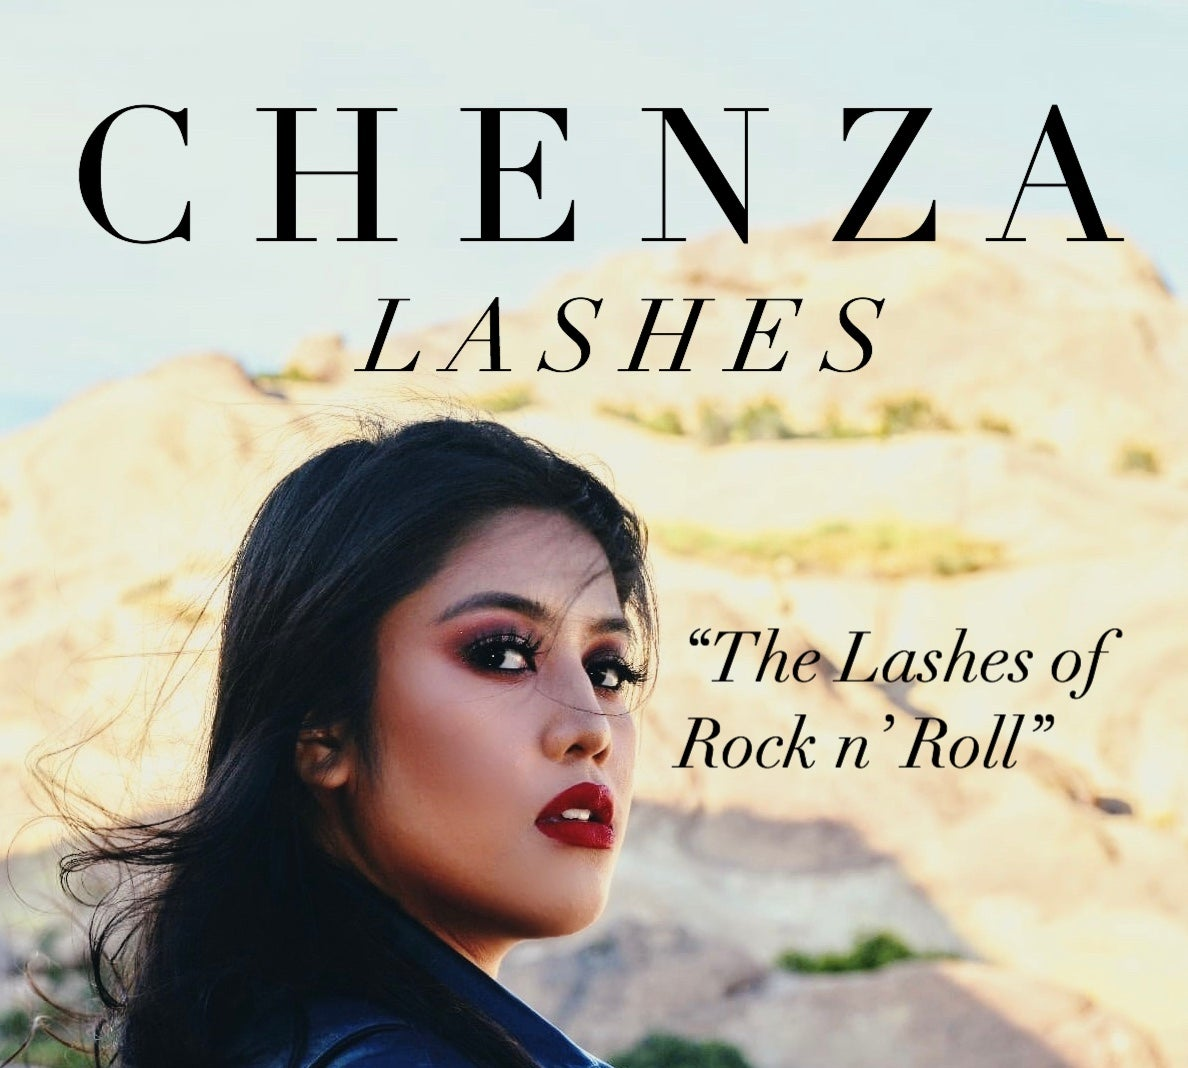 Welcome to Chenza Lashes